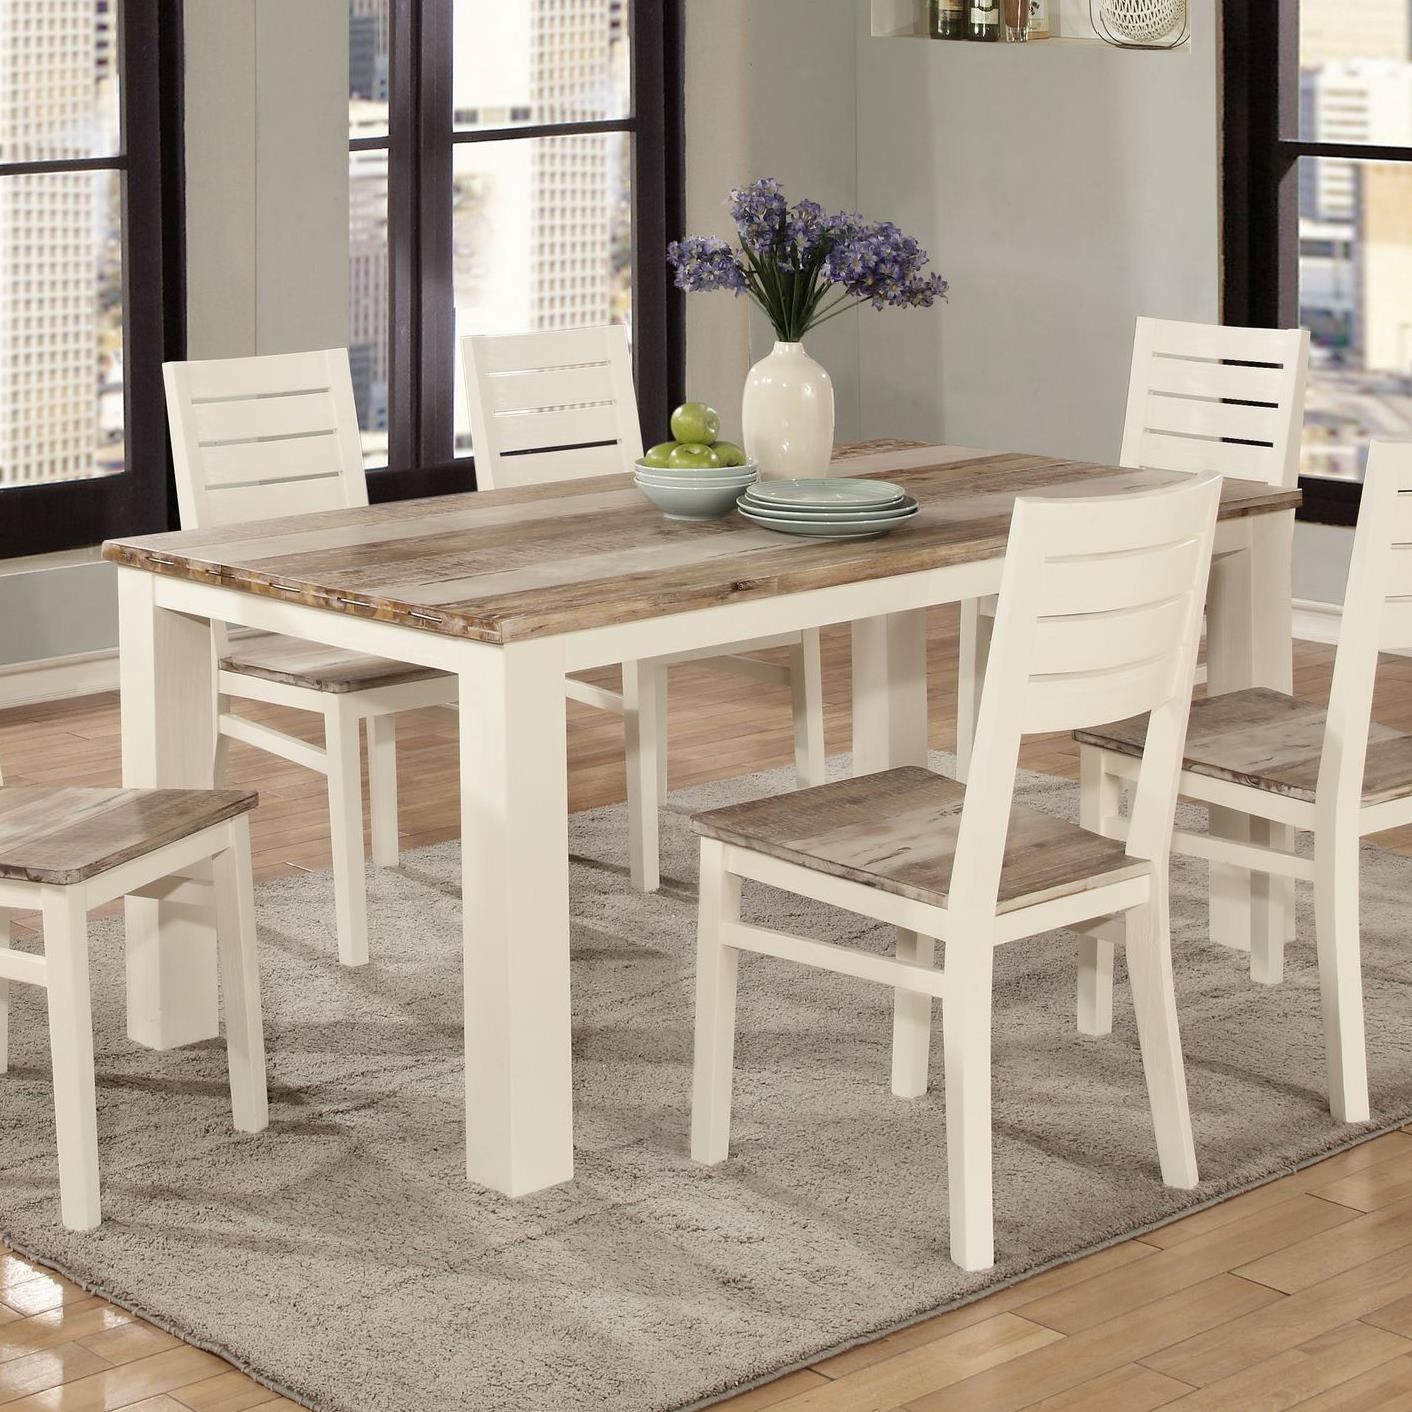 Lifestyle C347 Two Tone Wood Finish Rectangle Dining Table